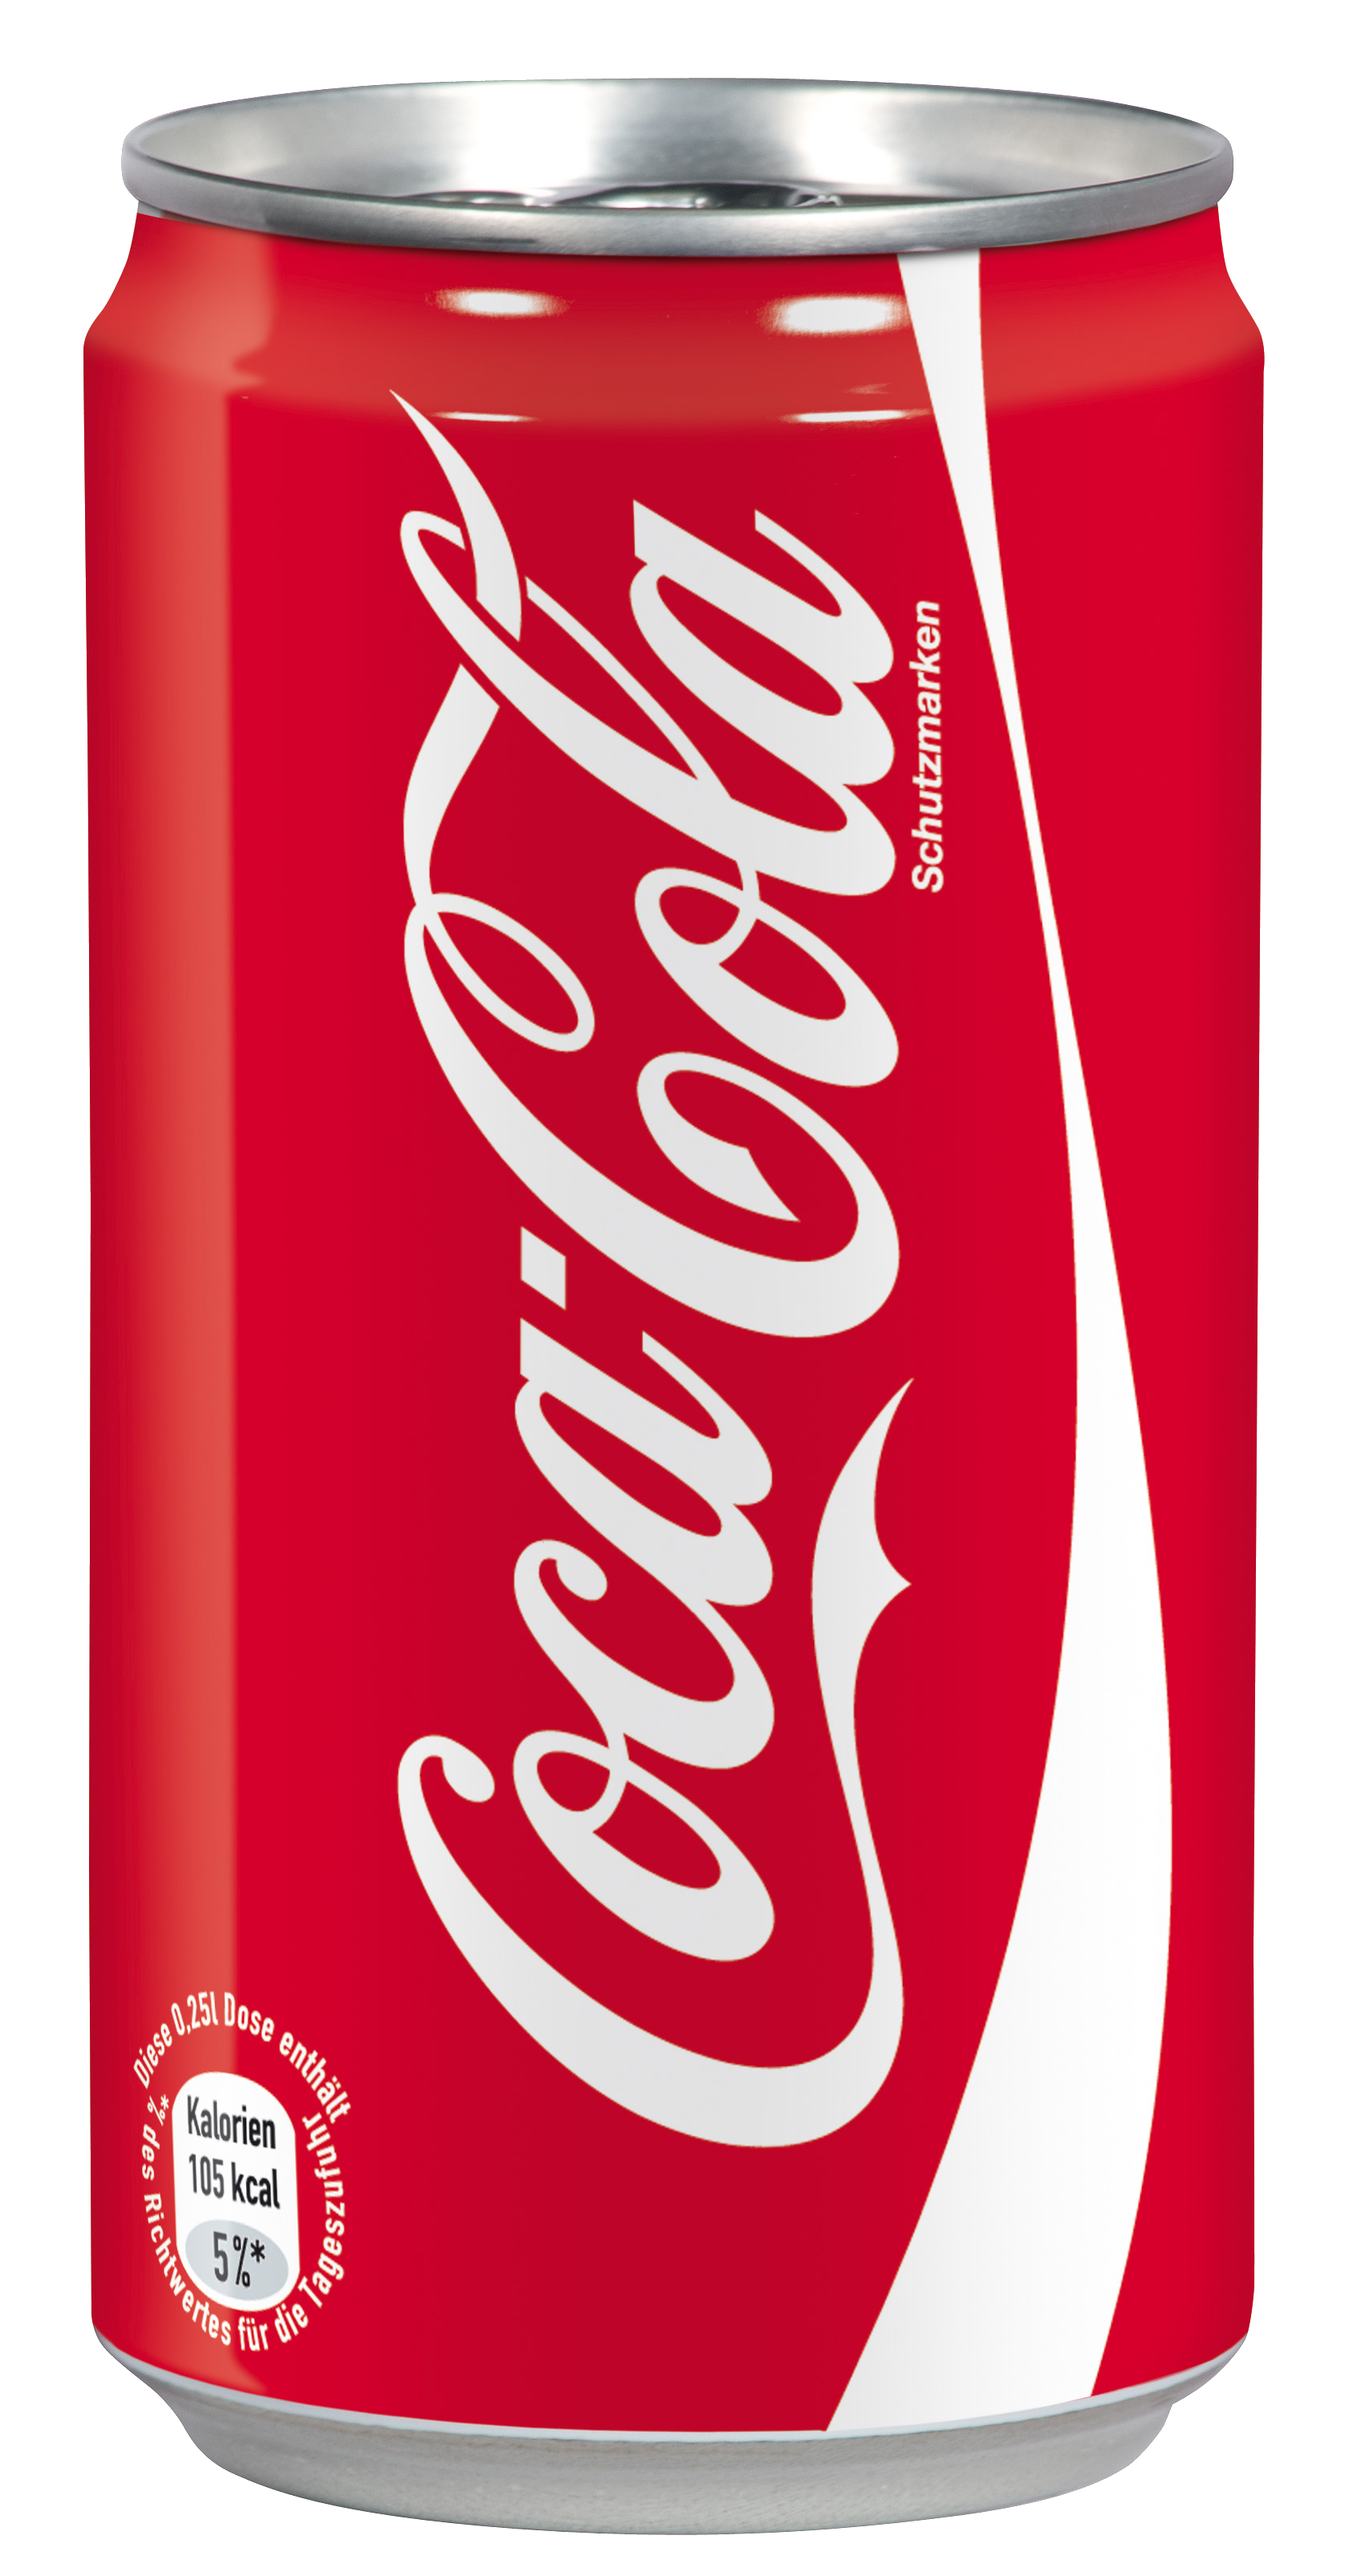 Png Soda Can - Pin Soda Clipart Transparent #9, Transparent background PNG HD thumbnail